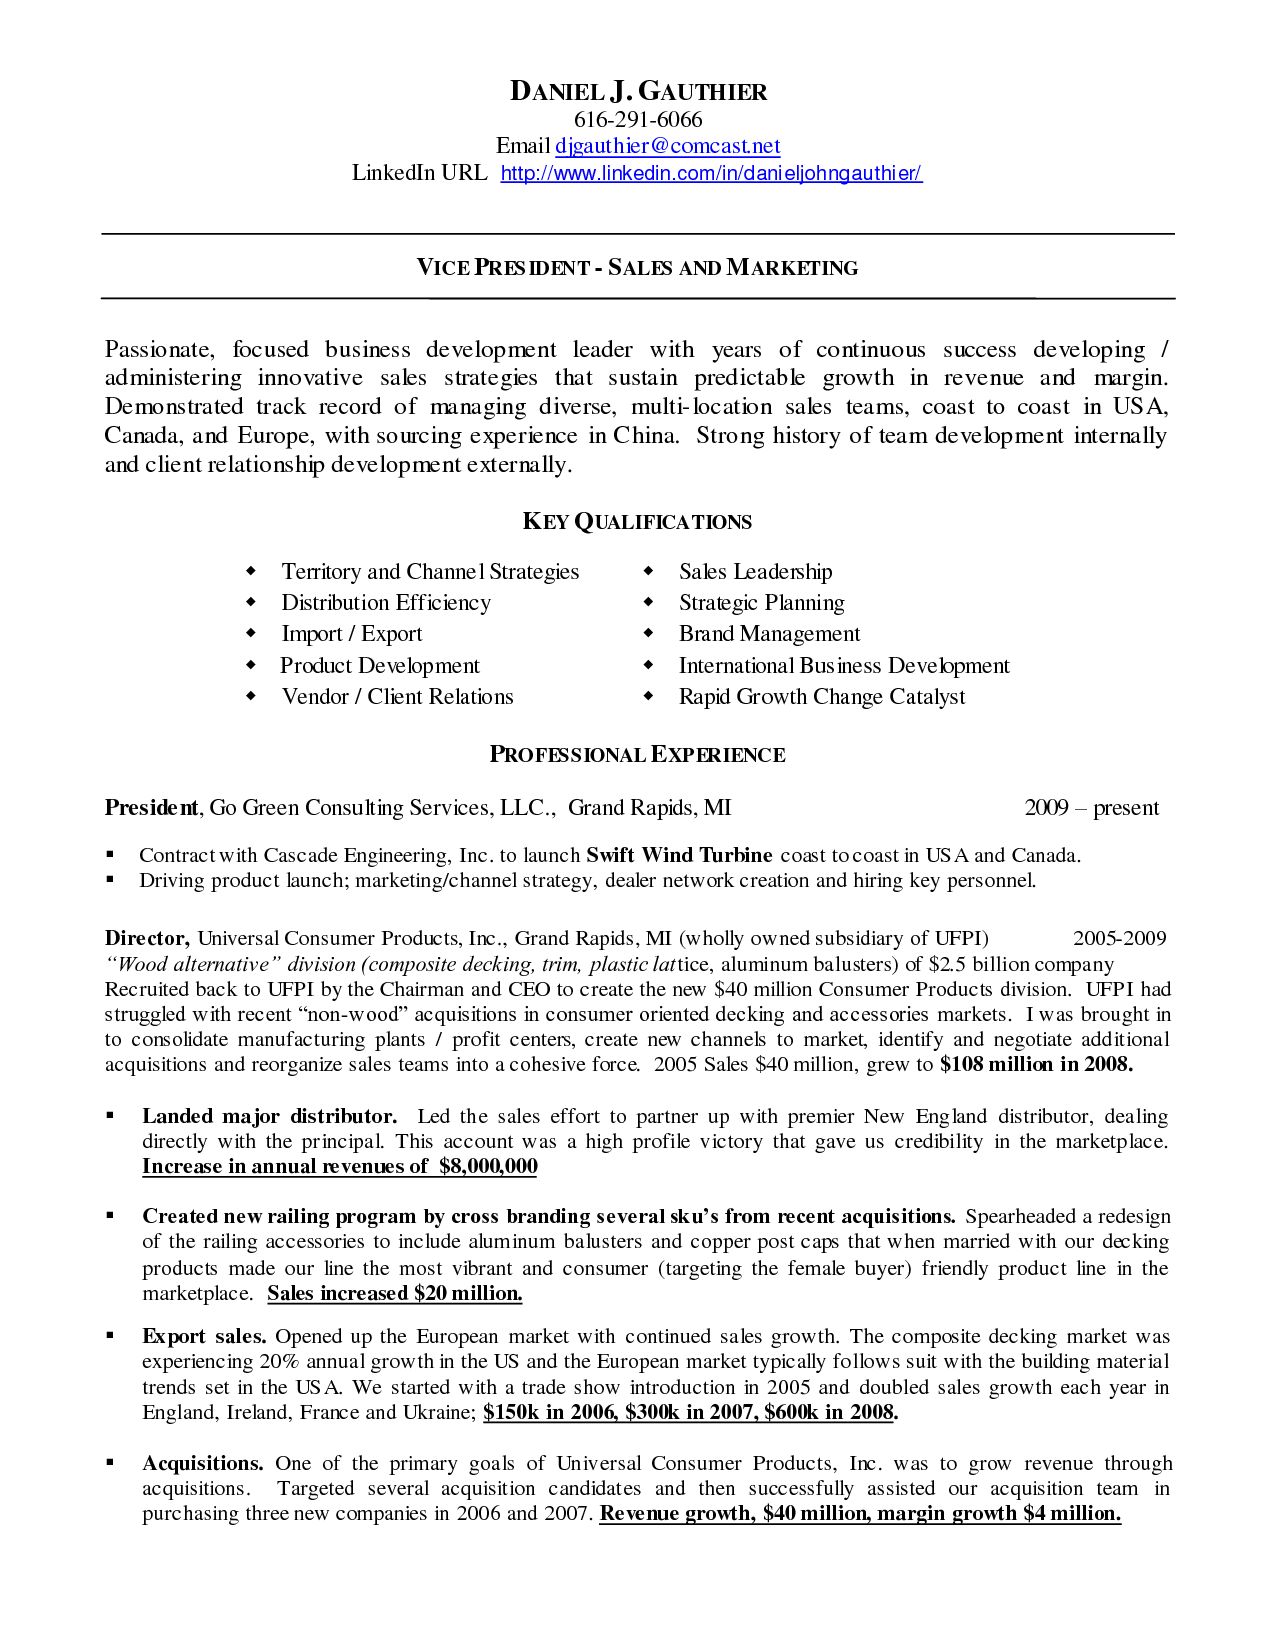 LinkedIn URL On Resume Example. Vice President Sales Business Development  Resume  Sales Resume Tips